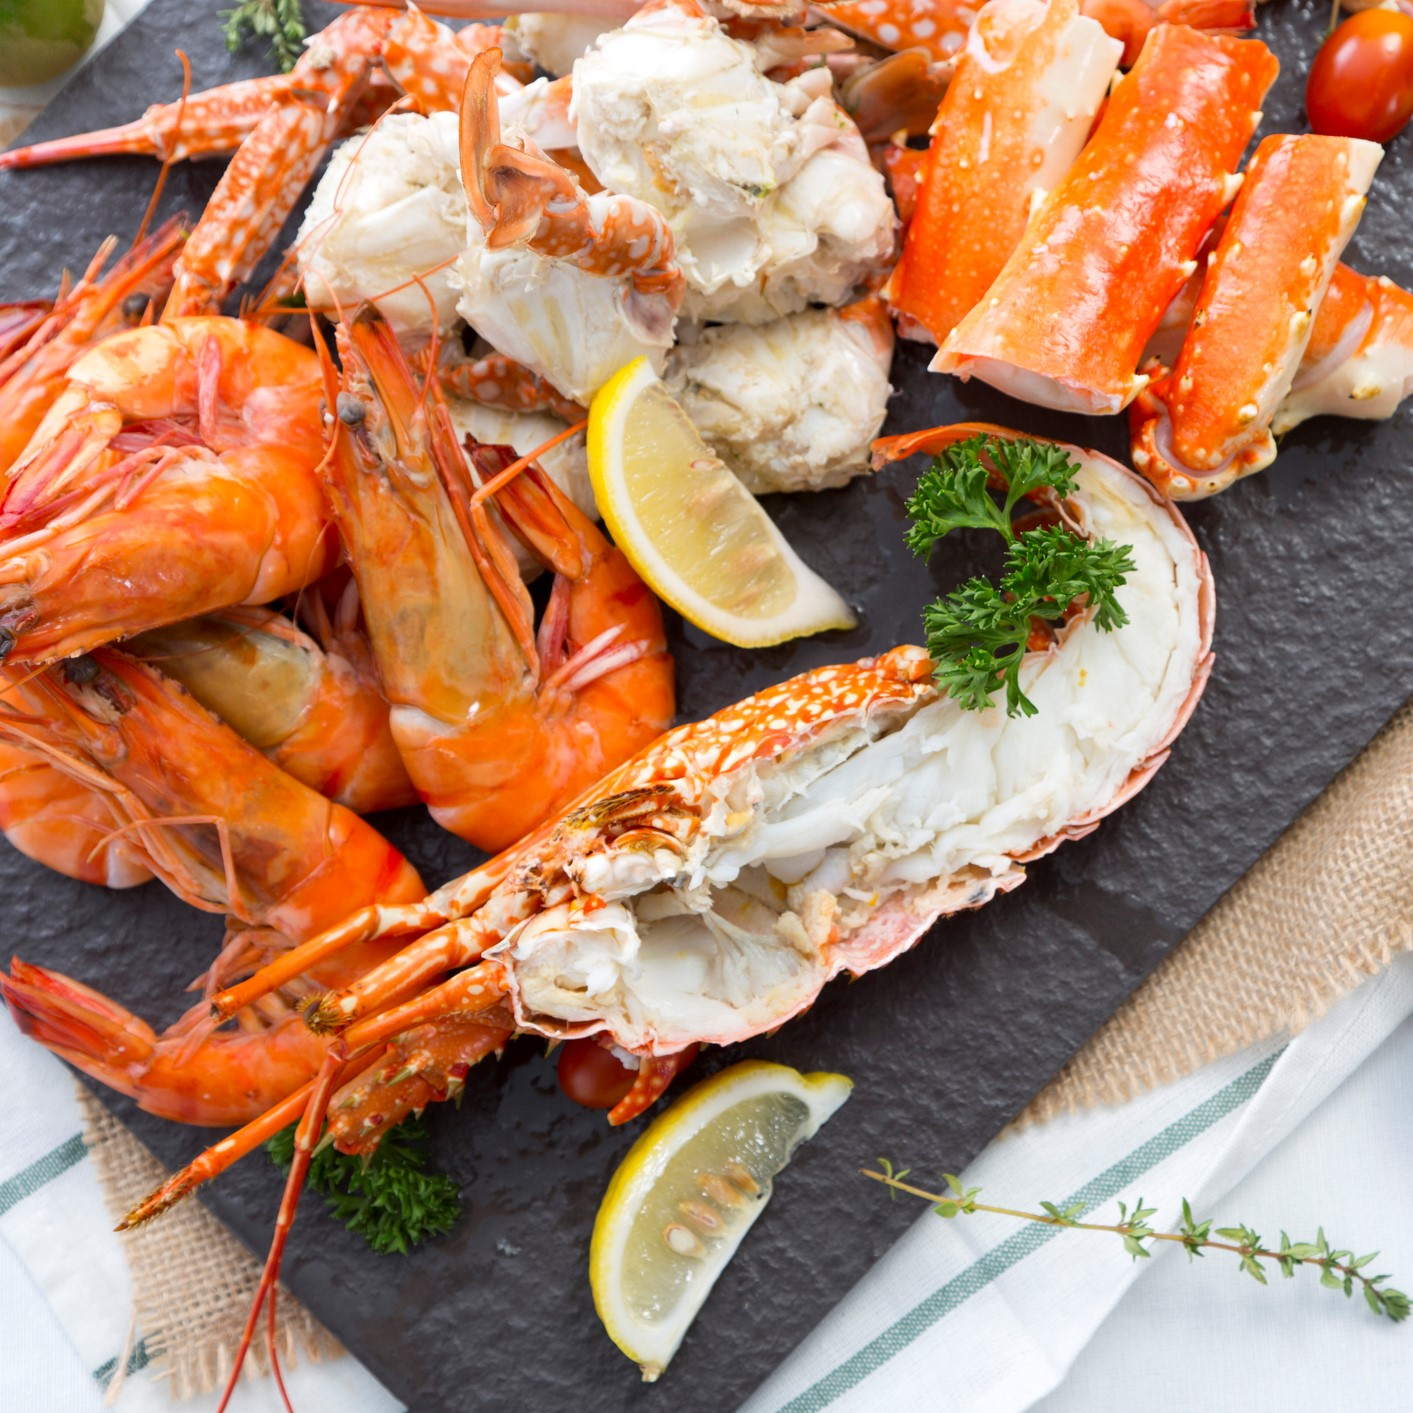 Crustaceans and molluscs - Food Allergy Canada